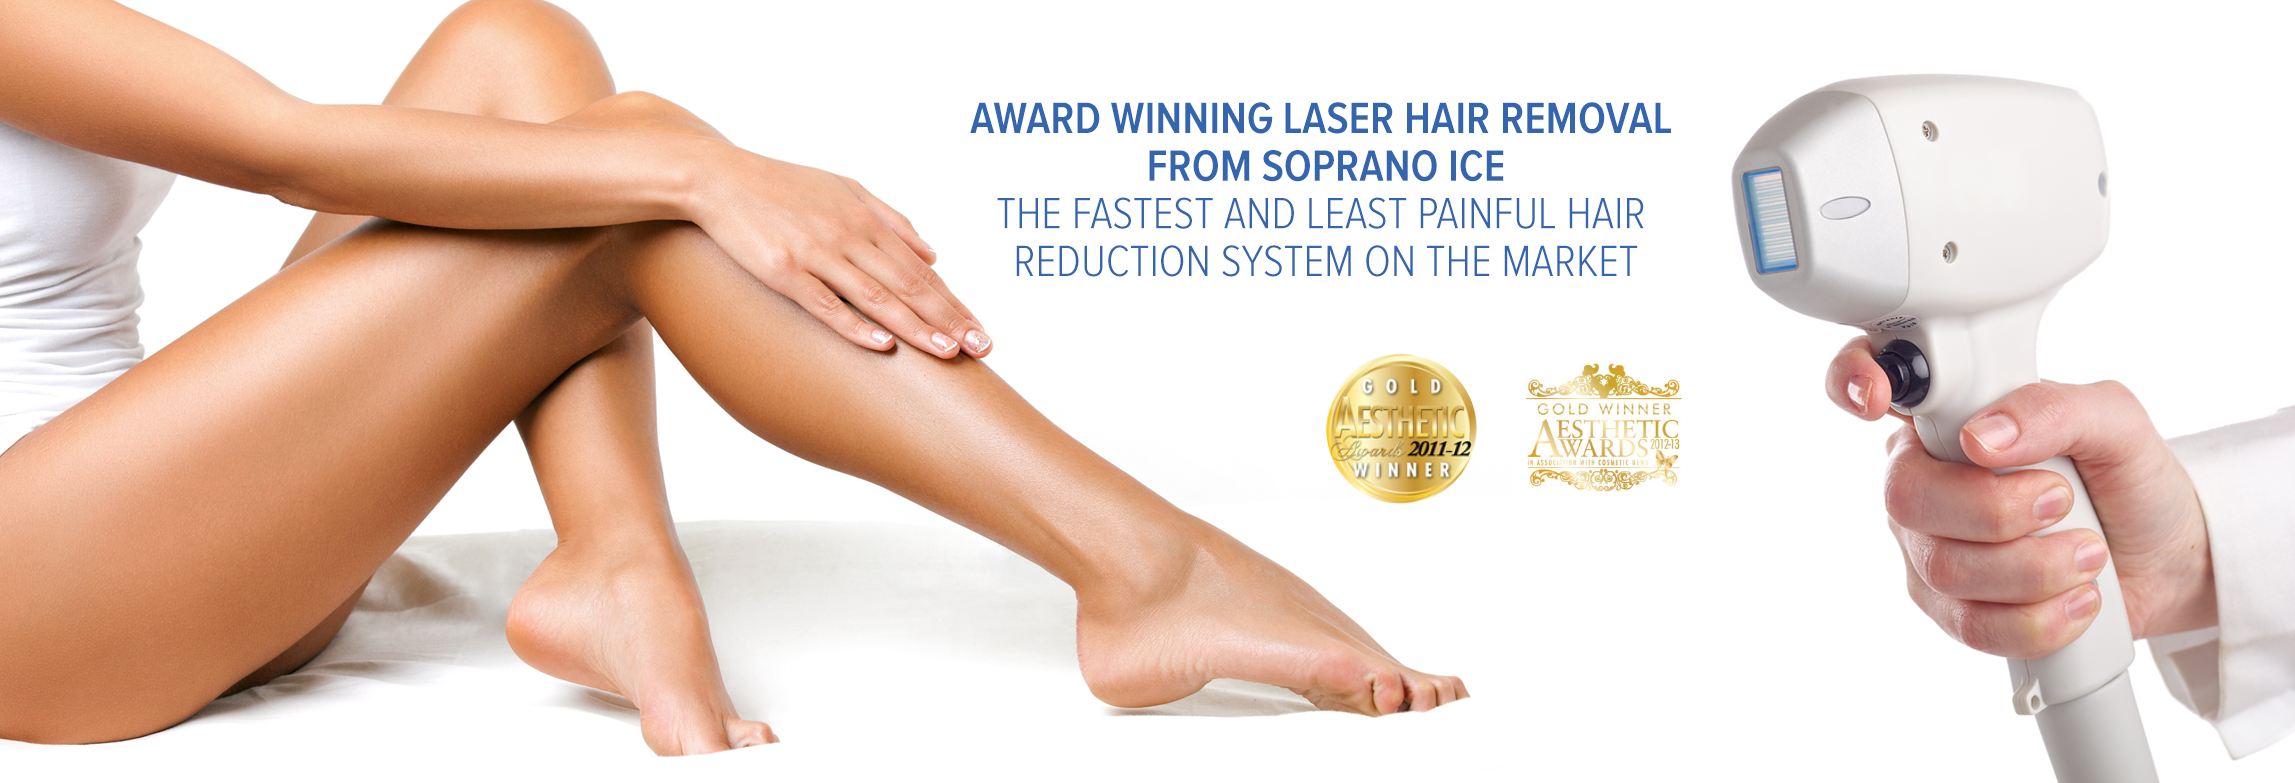 Soprano ice laser hair removal bellissimo hair salon and spa bellissimo laser hair removal salon spa solutioingenieria Choice Image